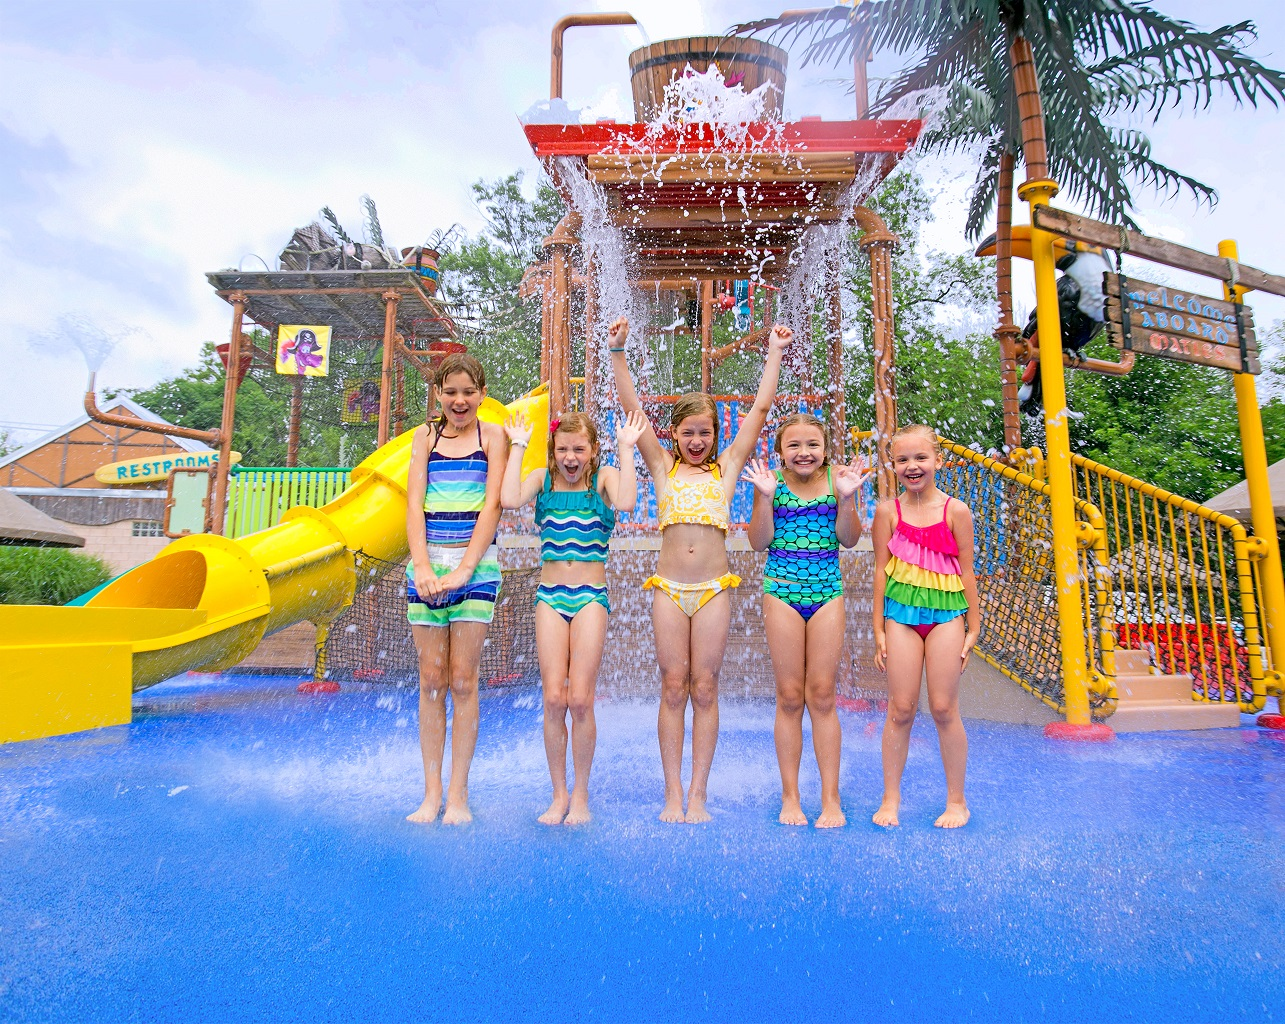 Five girls in water play area